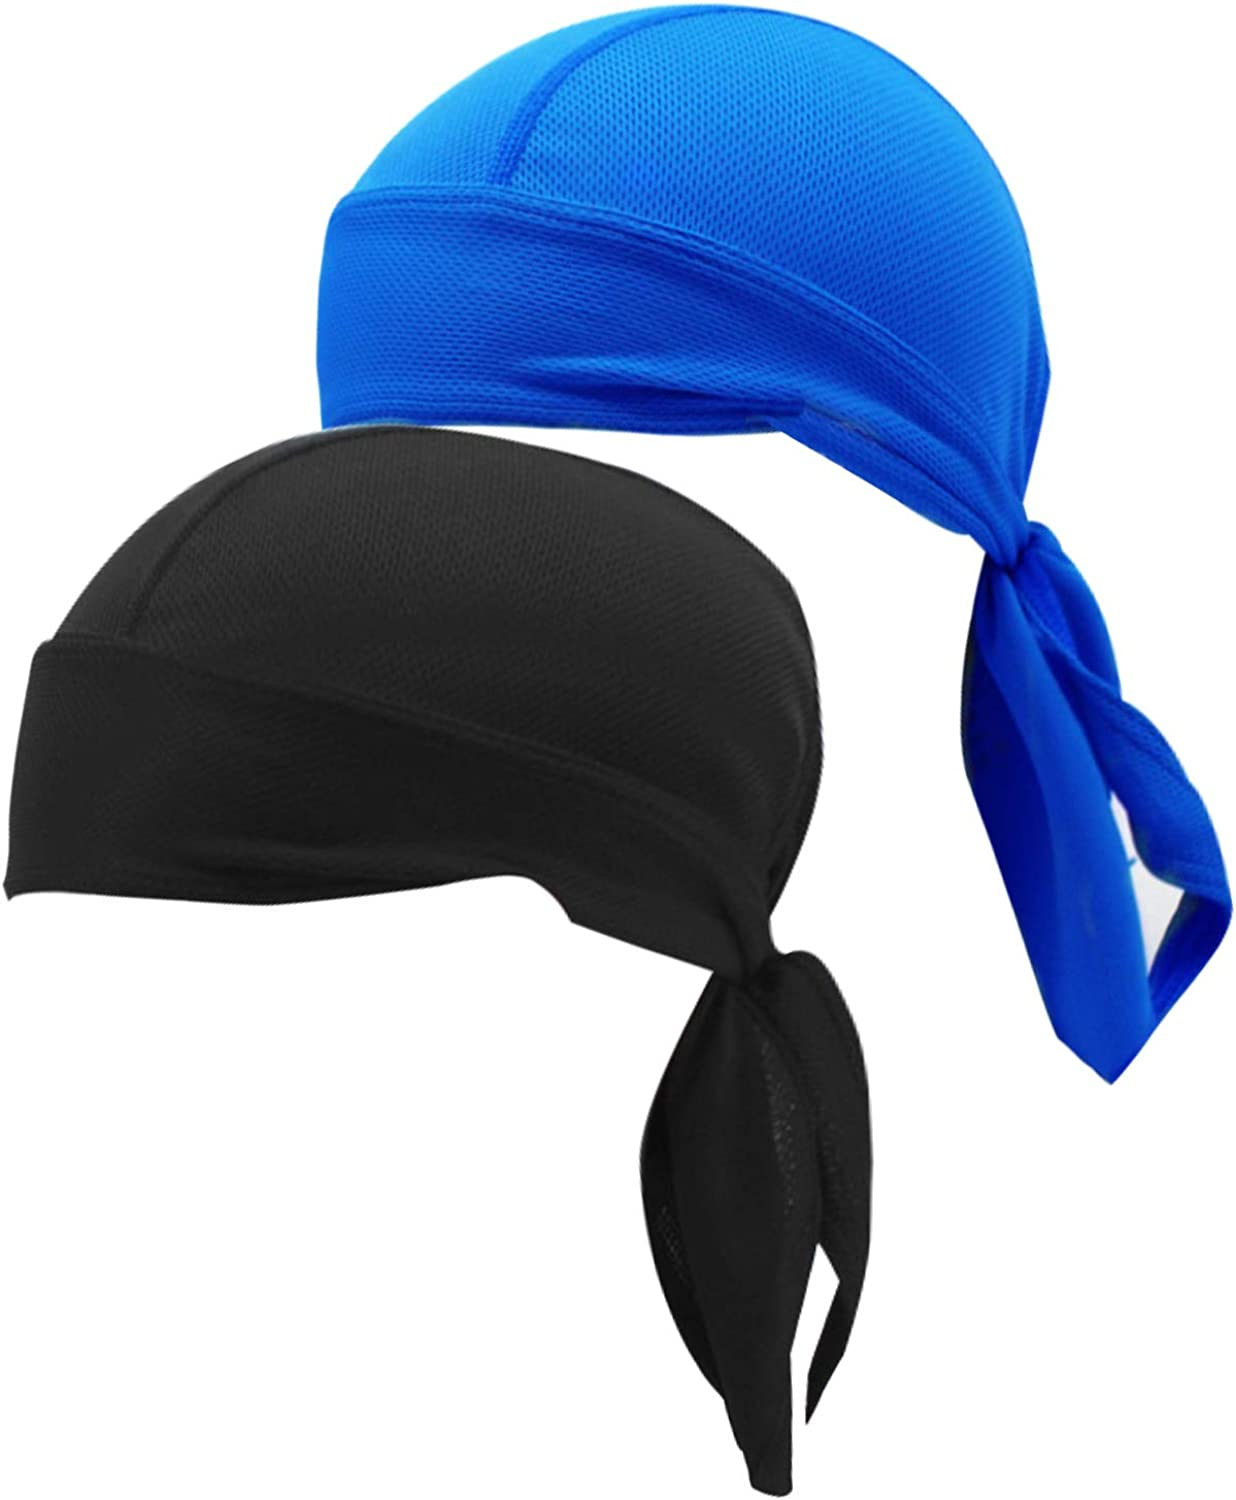 2 Pack Sweat Wicking Cycling Helmet Liner Beanie Caps Skull Challenge Cheap super special price the lowest price